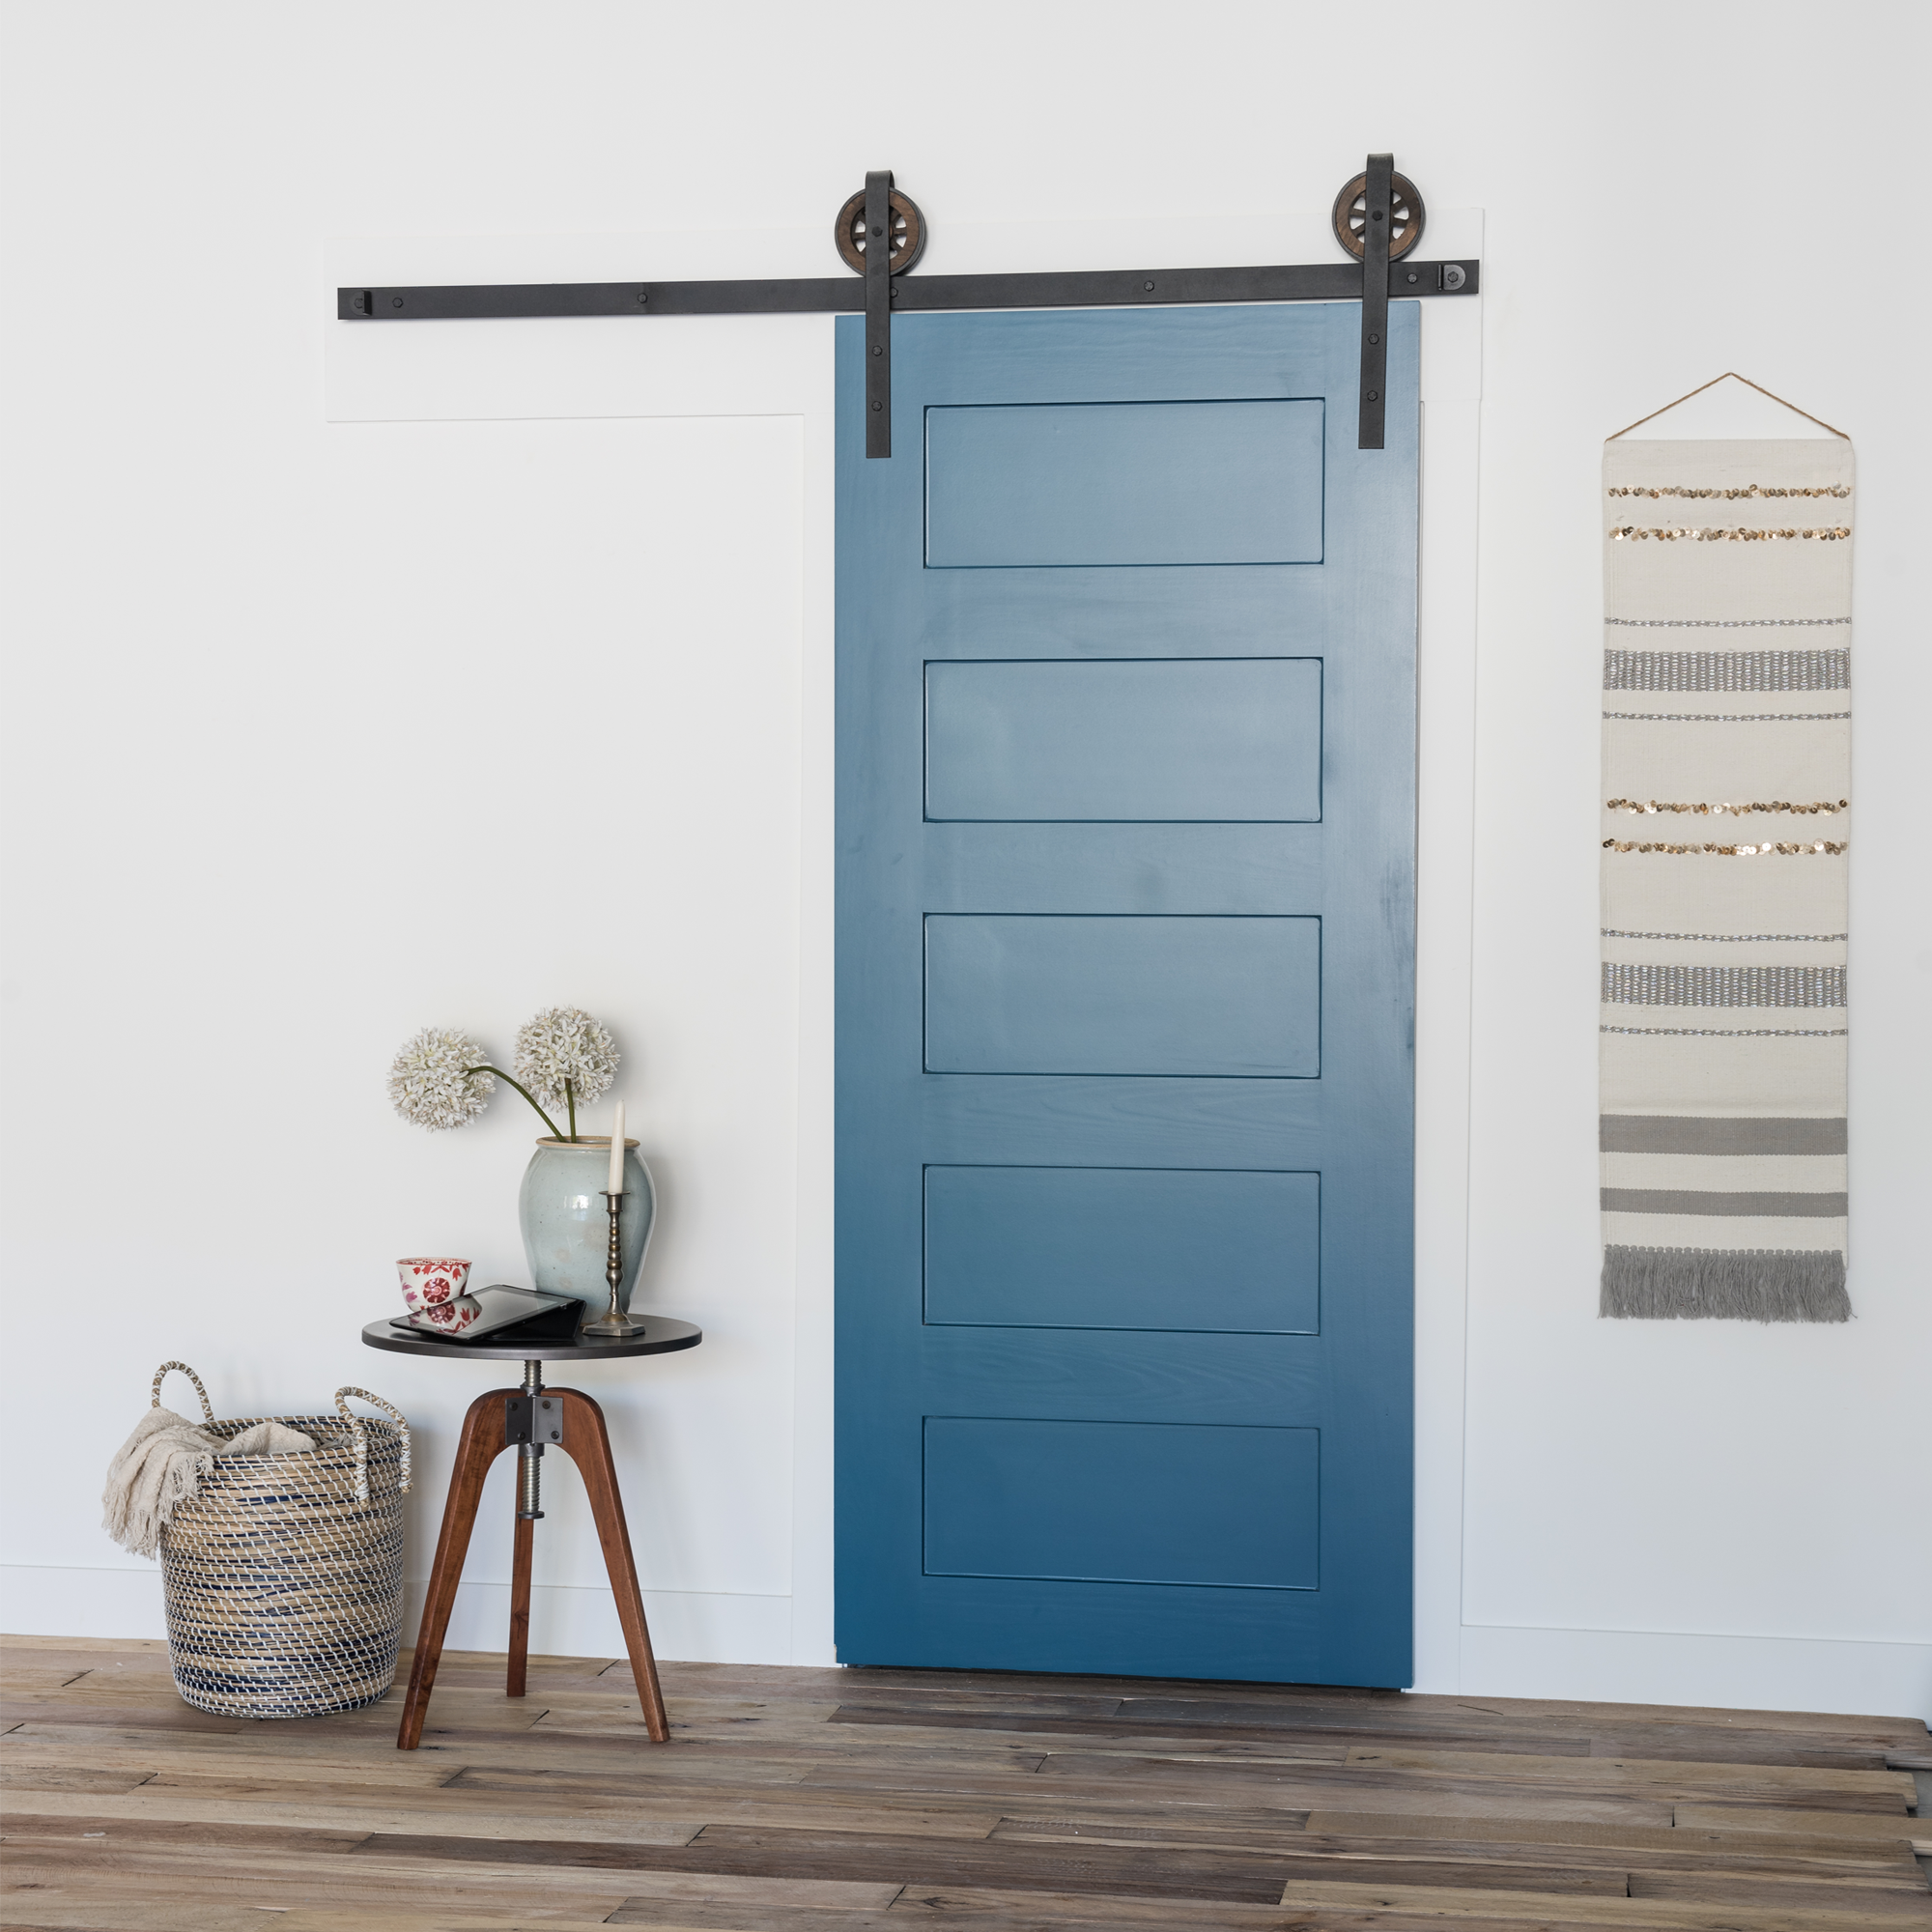 The 5 panel wood barn door is a more contemporary twist on old the 5 panel wood barn door is a more contemporary twist on old style doors eventelaan Choice Image